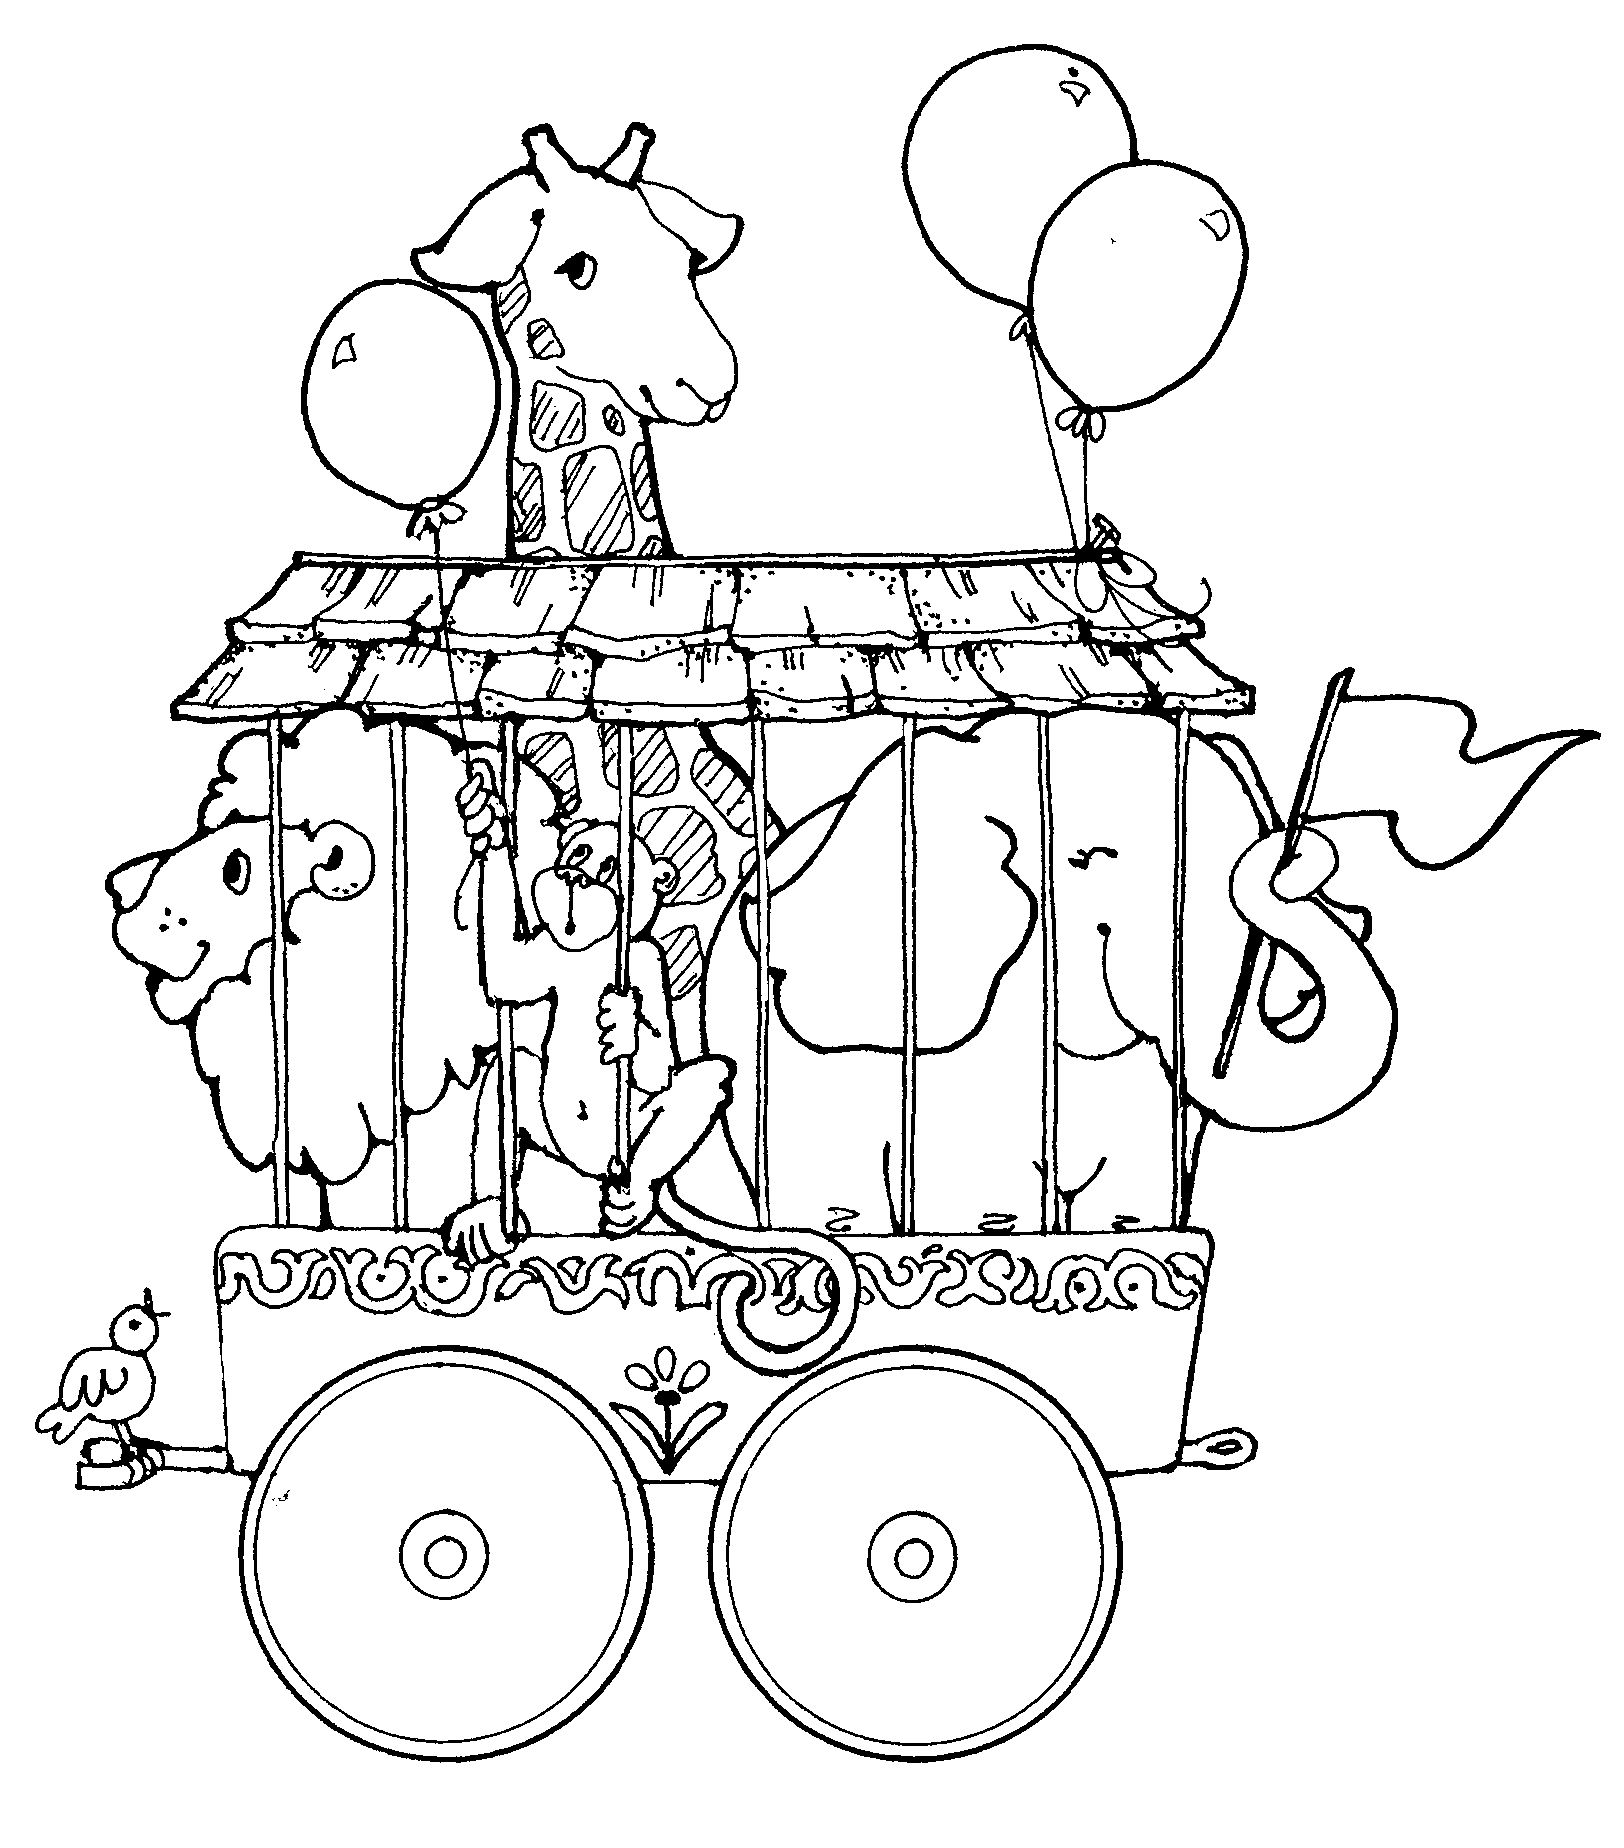 circus coloring pages for preschool circus coloring pages for kindergarten kidsworksheetfun preschool pages coloring circus for